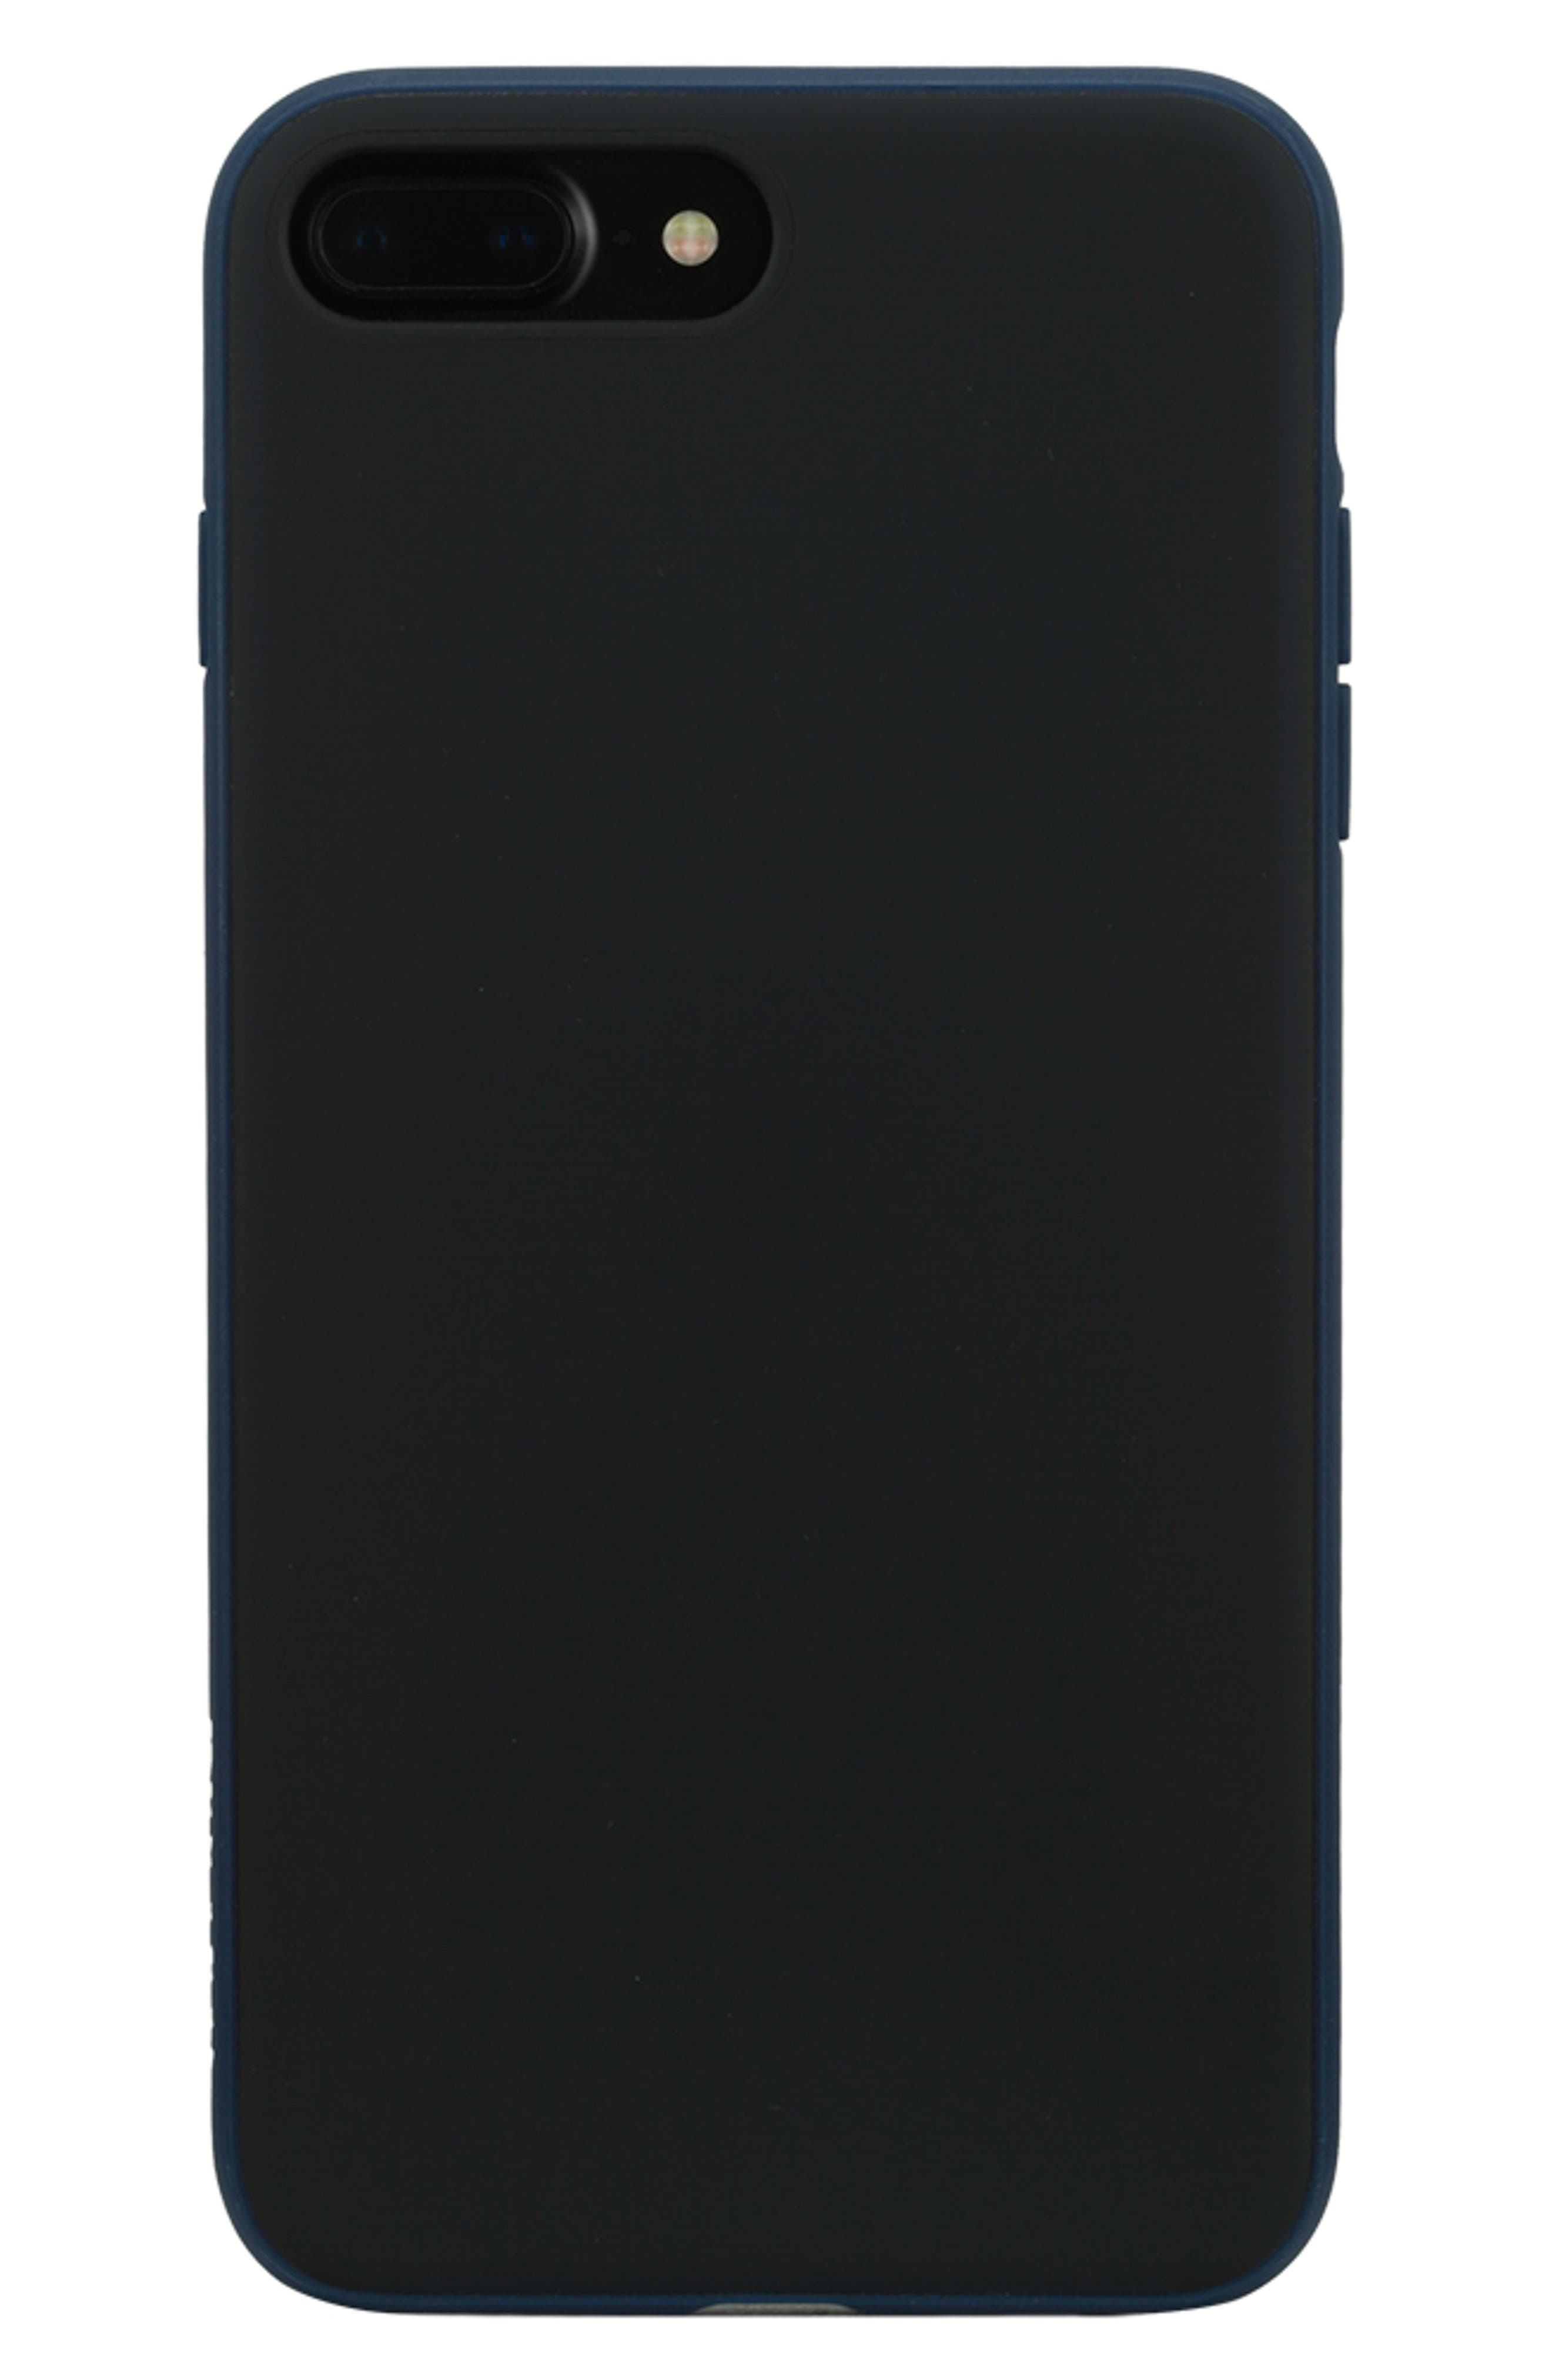 iphone 7 plus cell phone cases